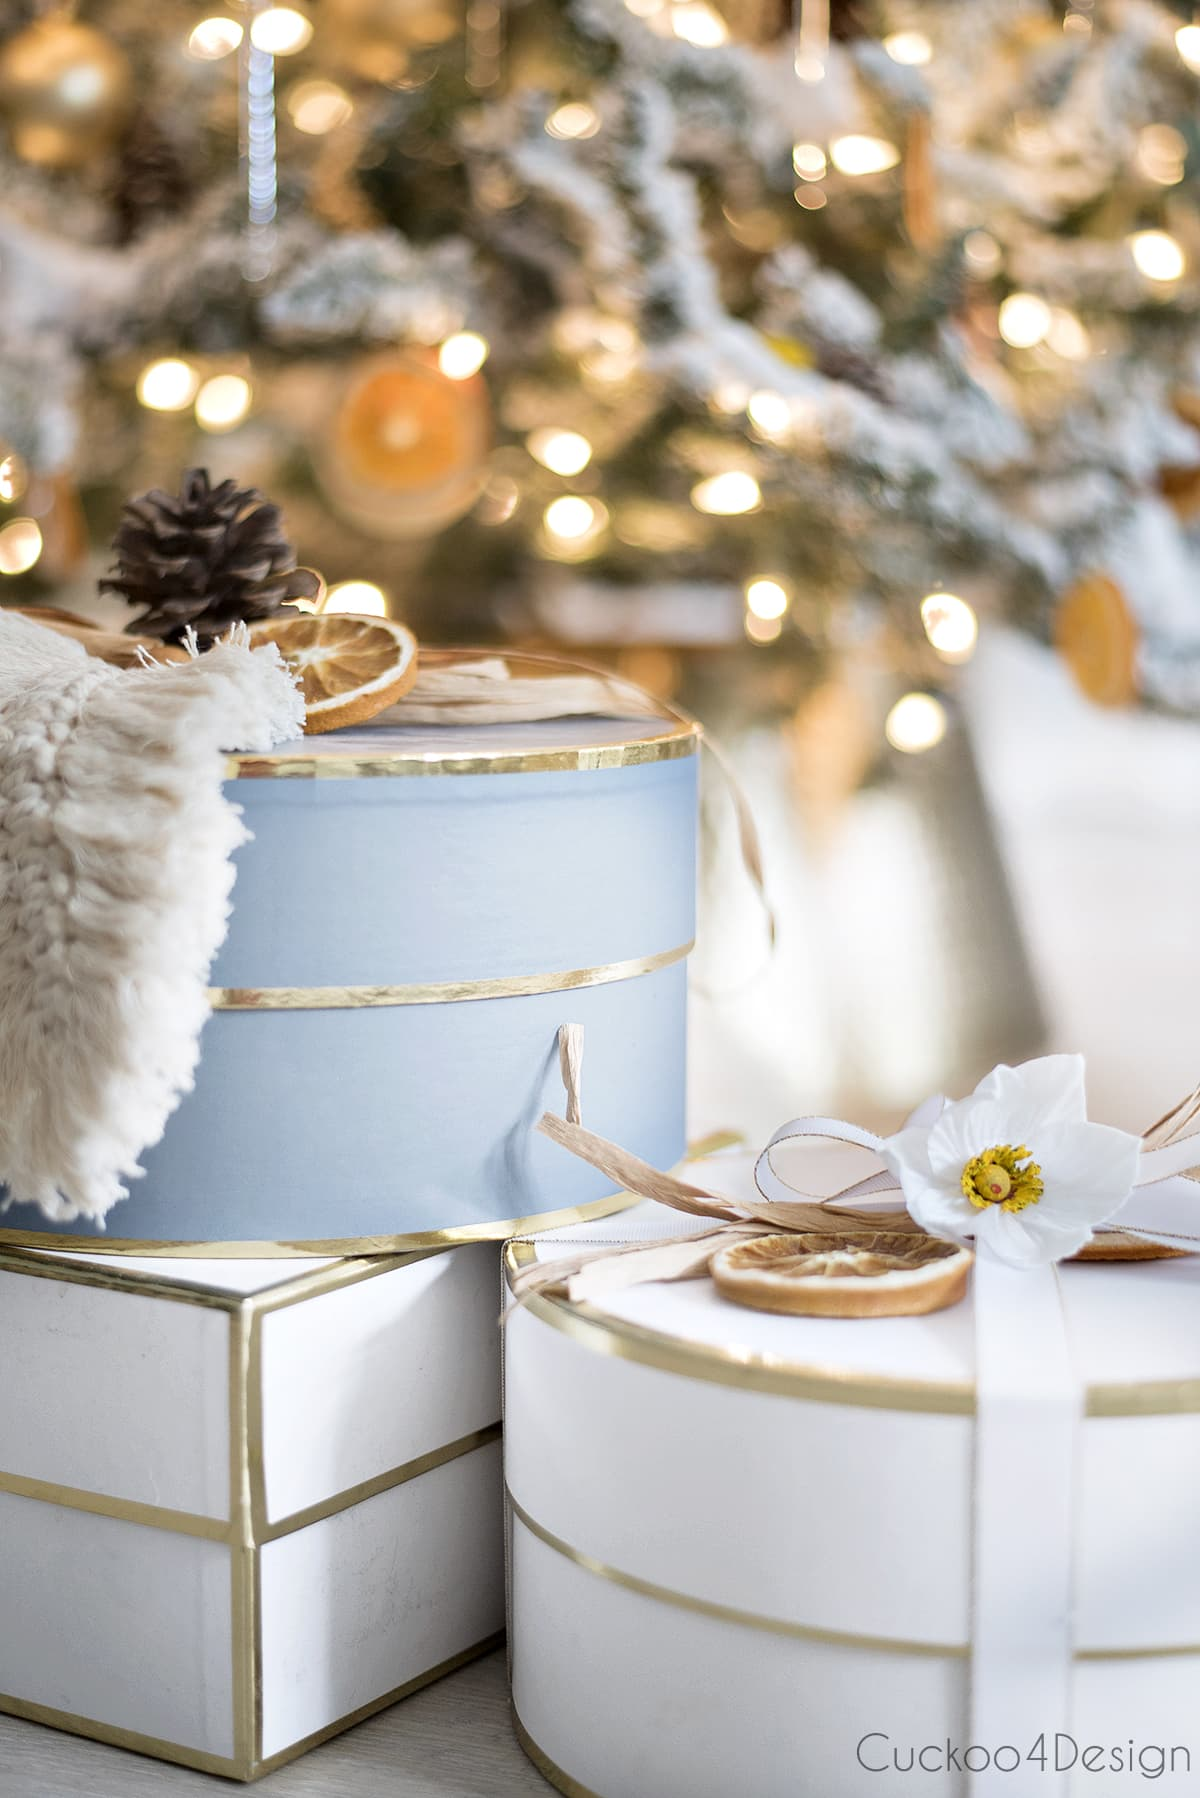 blue, white and gold wrapped presents with dried orange slices and German Christmas rose